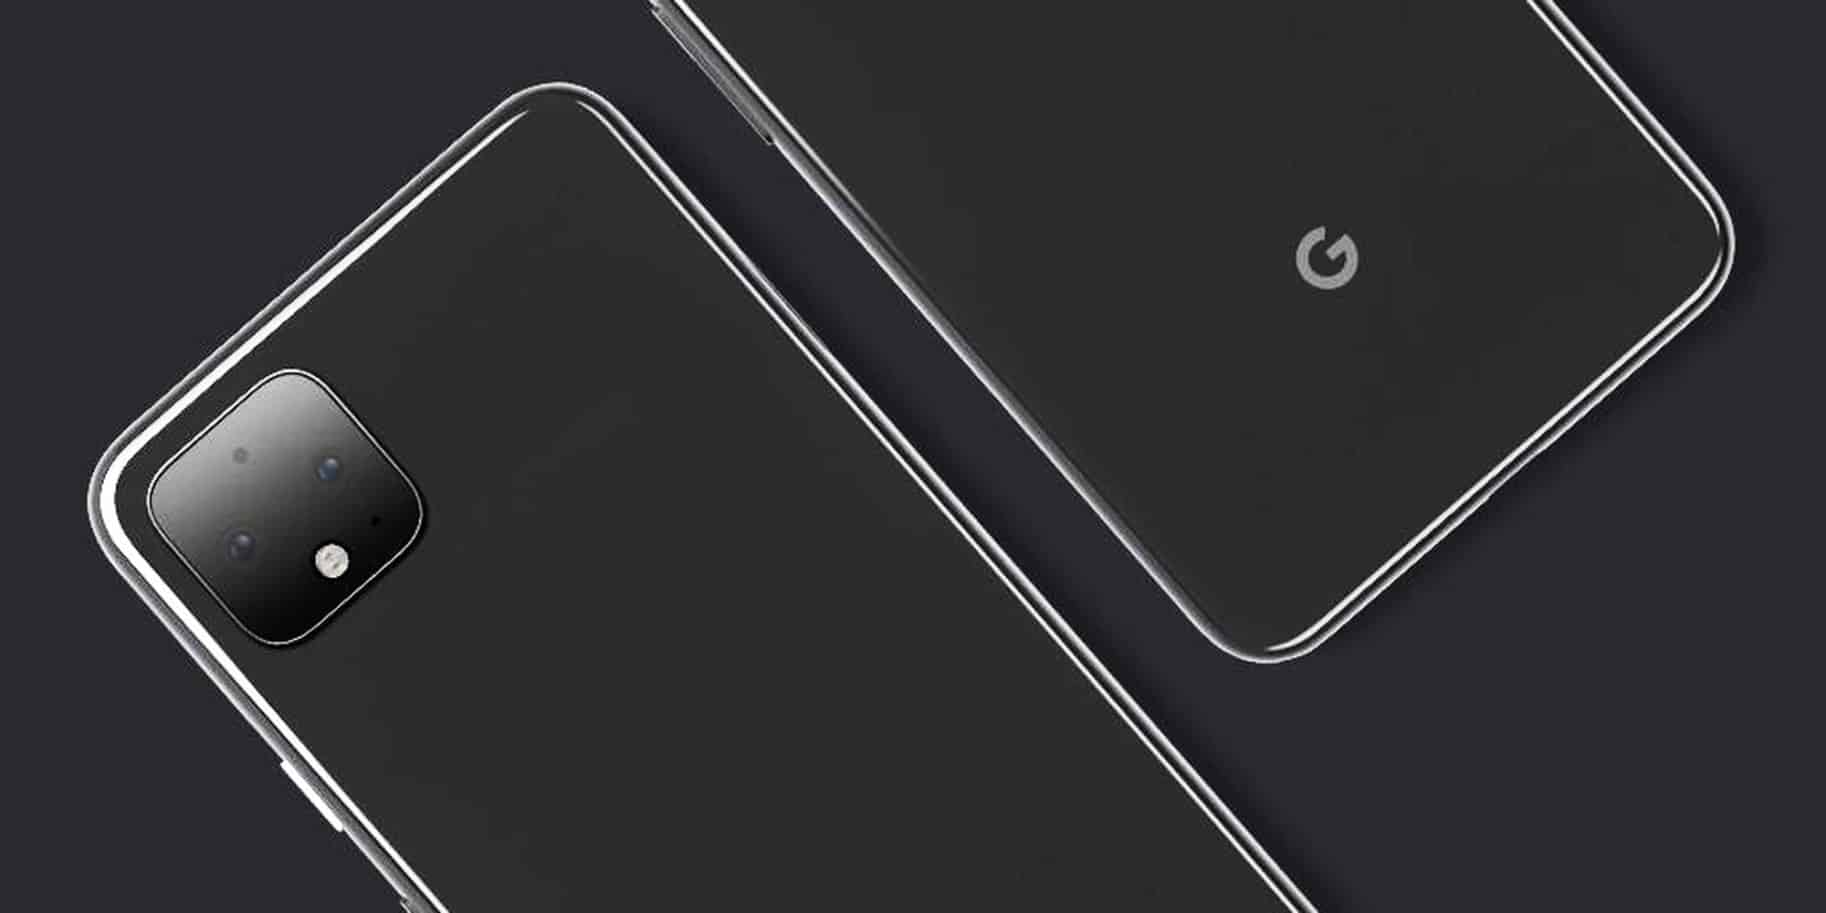 Google Pixel 4 set to launch on October 15th hardware event